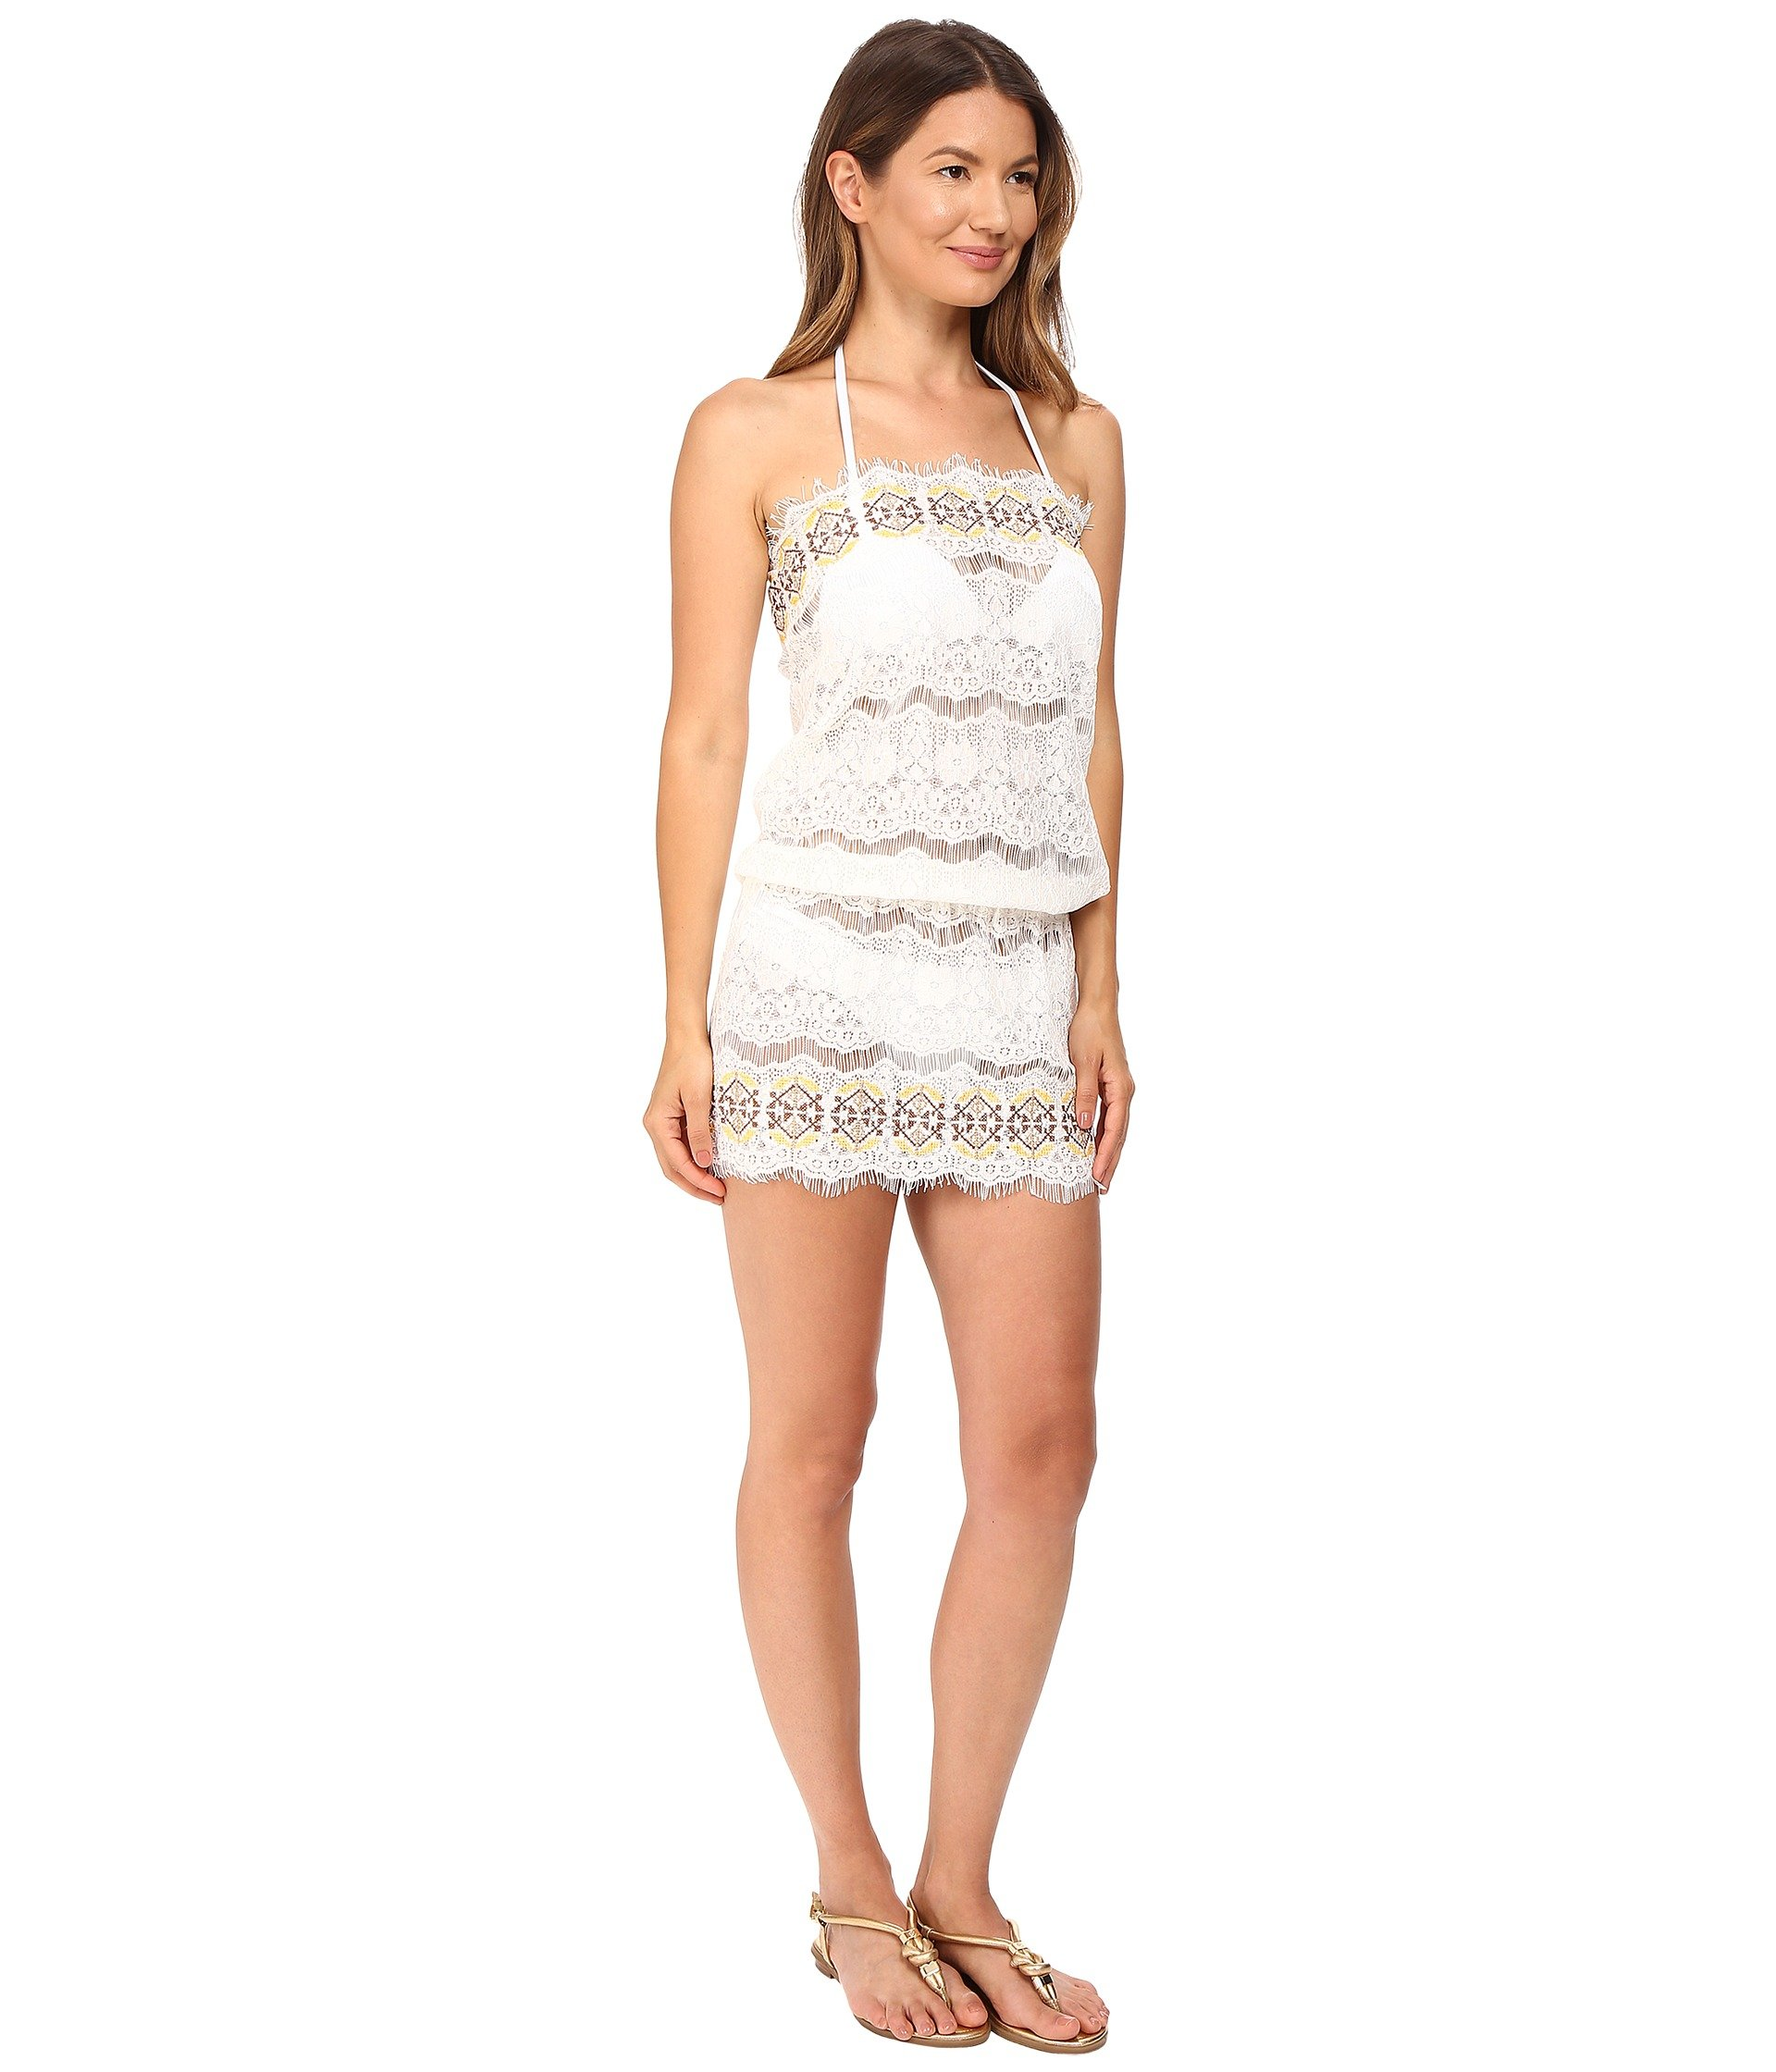 Queen pawn kea lace embroidered strapless beach dress in